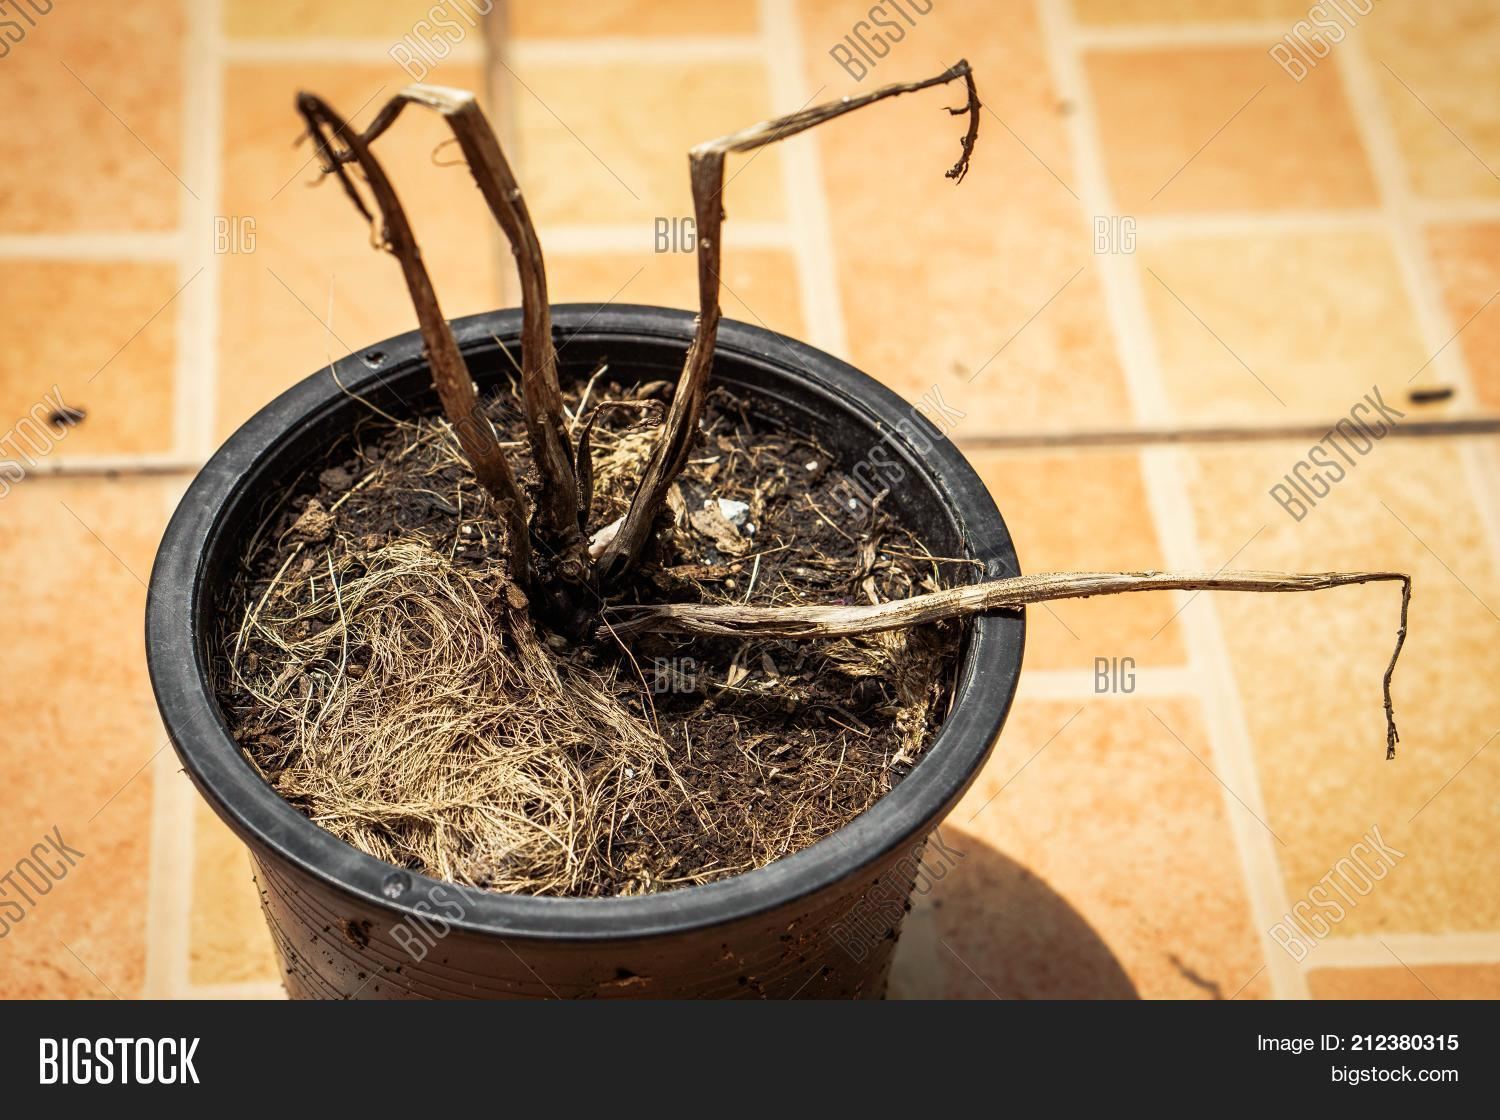 Dead Plant Dry Leaves Image & Photo (Free Trial) | Bigstock